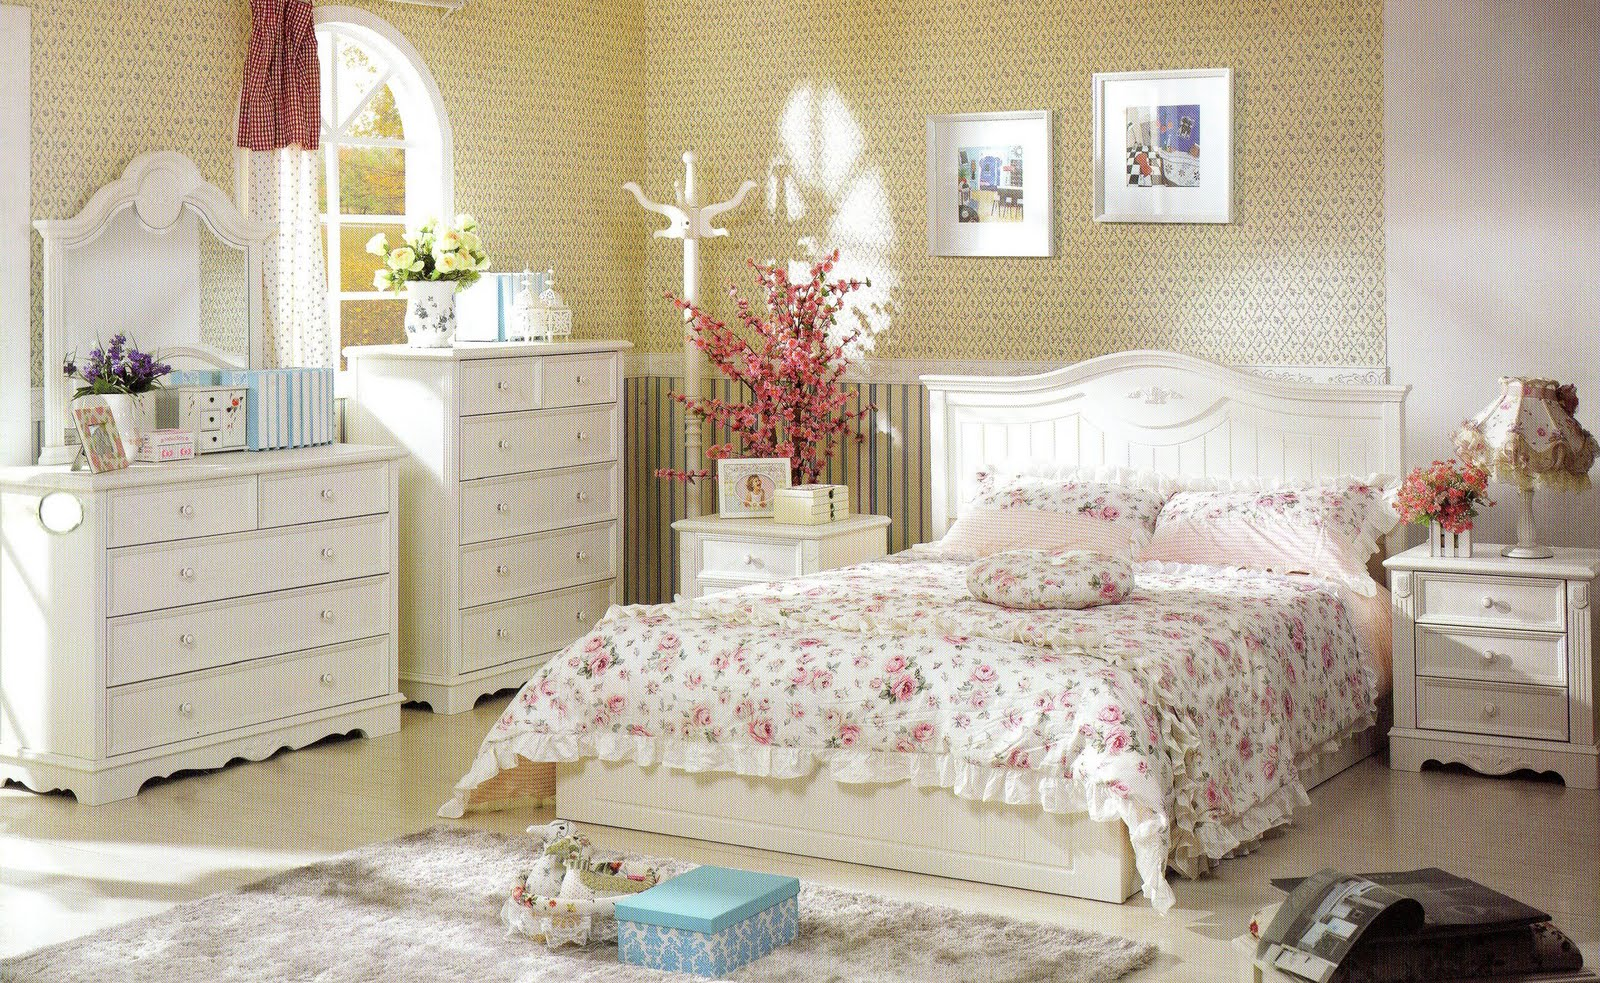 small country bedroom ideas small country bedroom ideas country style bedrooms 17257